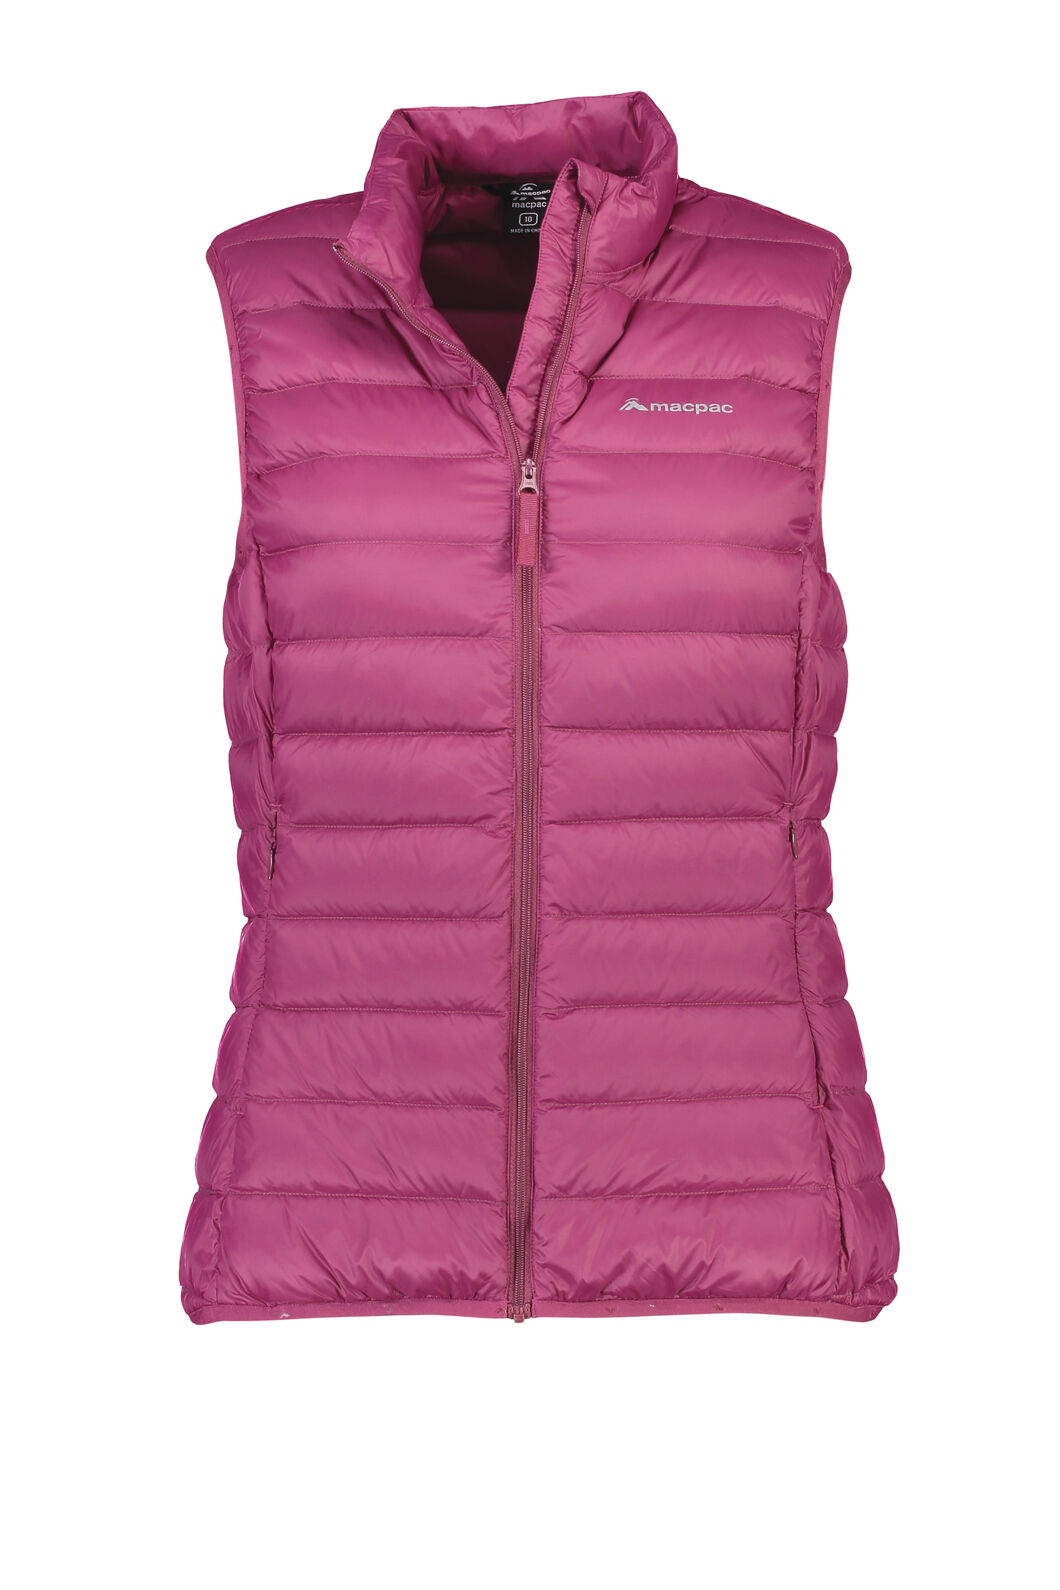 Macpac Uber Light Down Vest - Women's, Beet Red, hi-res